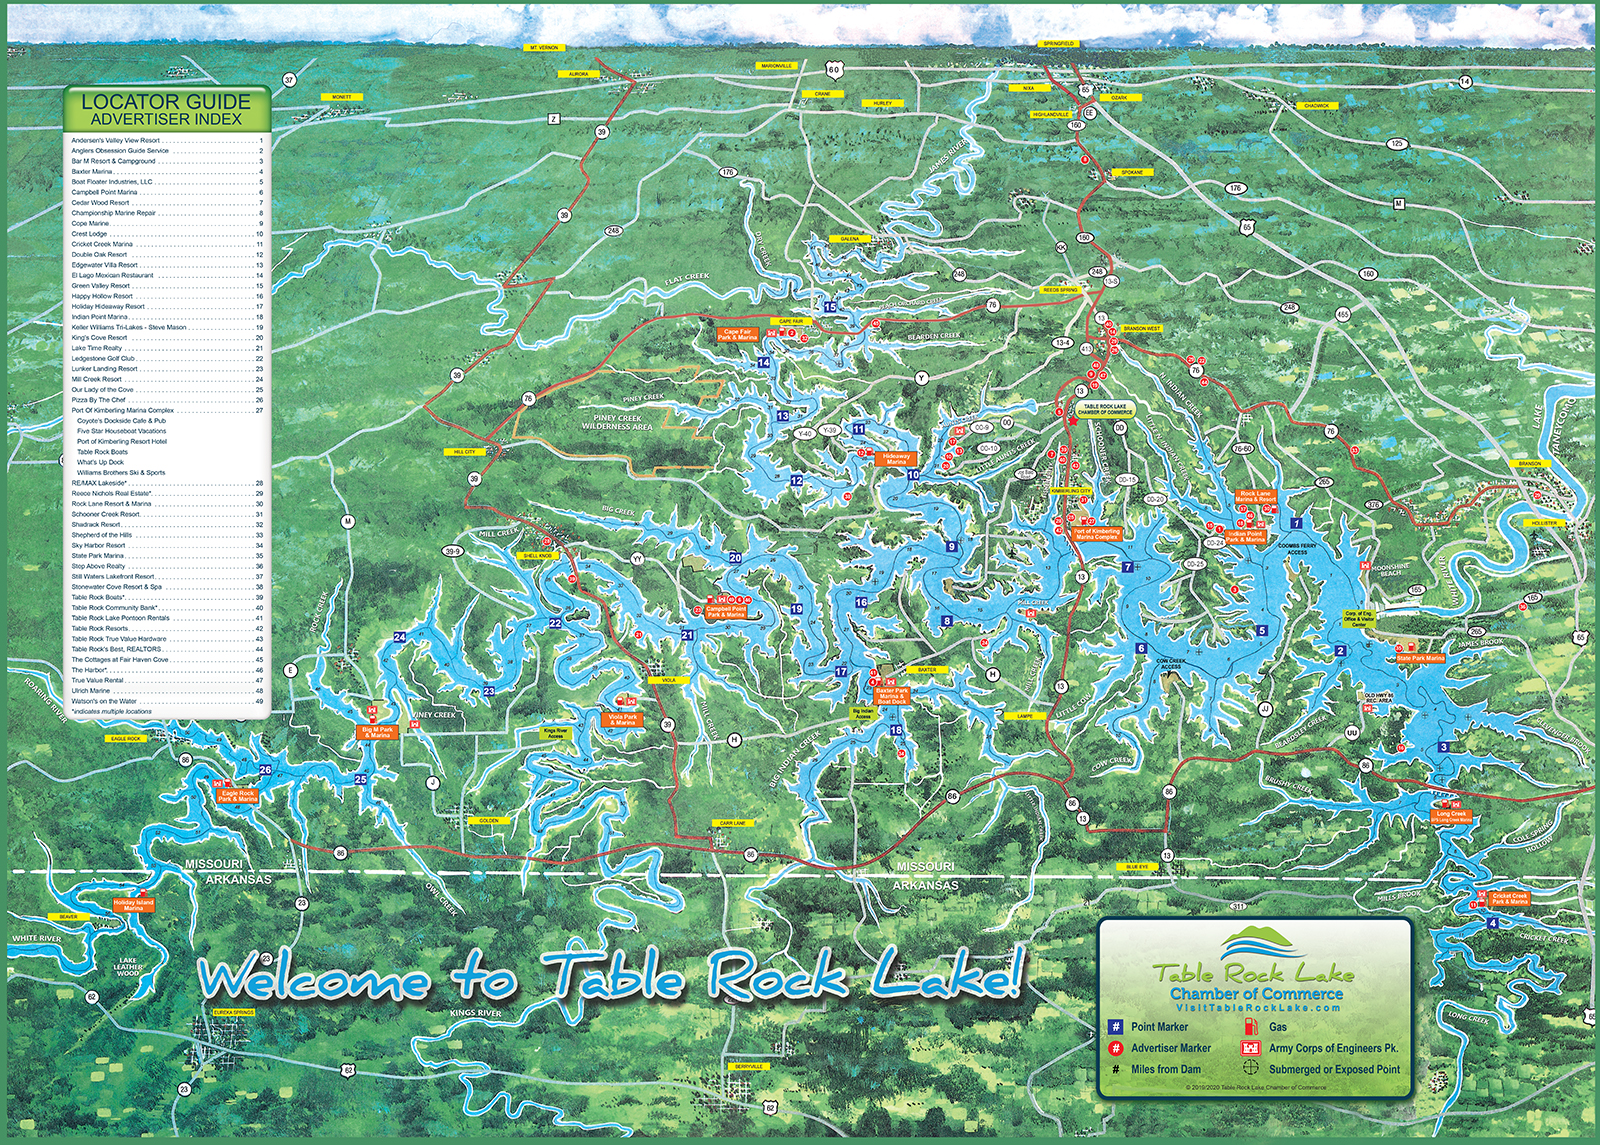 Lake Map - Table Rock Lake Chamber of Commerce, MO